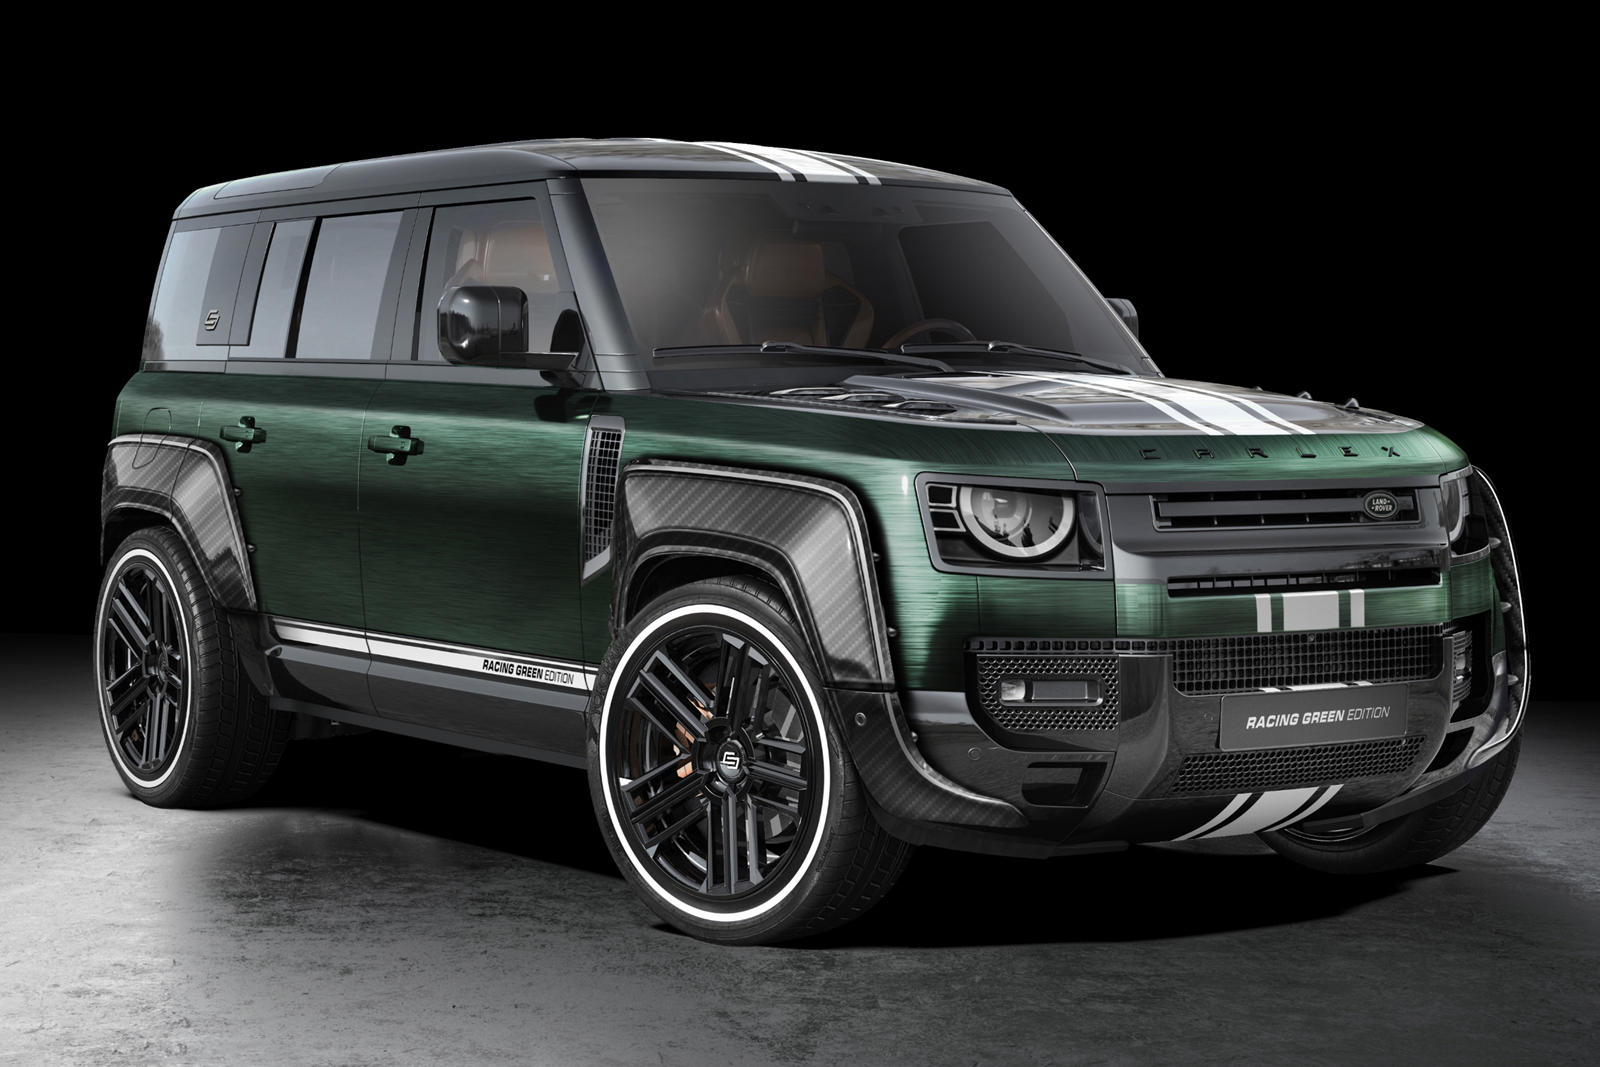 Carlex Design Land Rover Defender Racing Green Edition: Una agresiva preparación con aroma británico